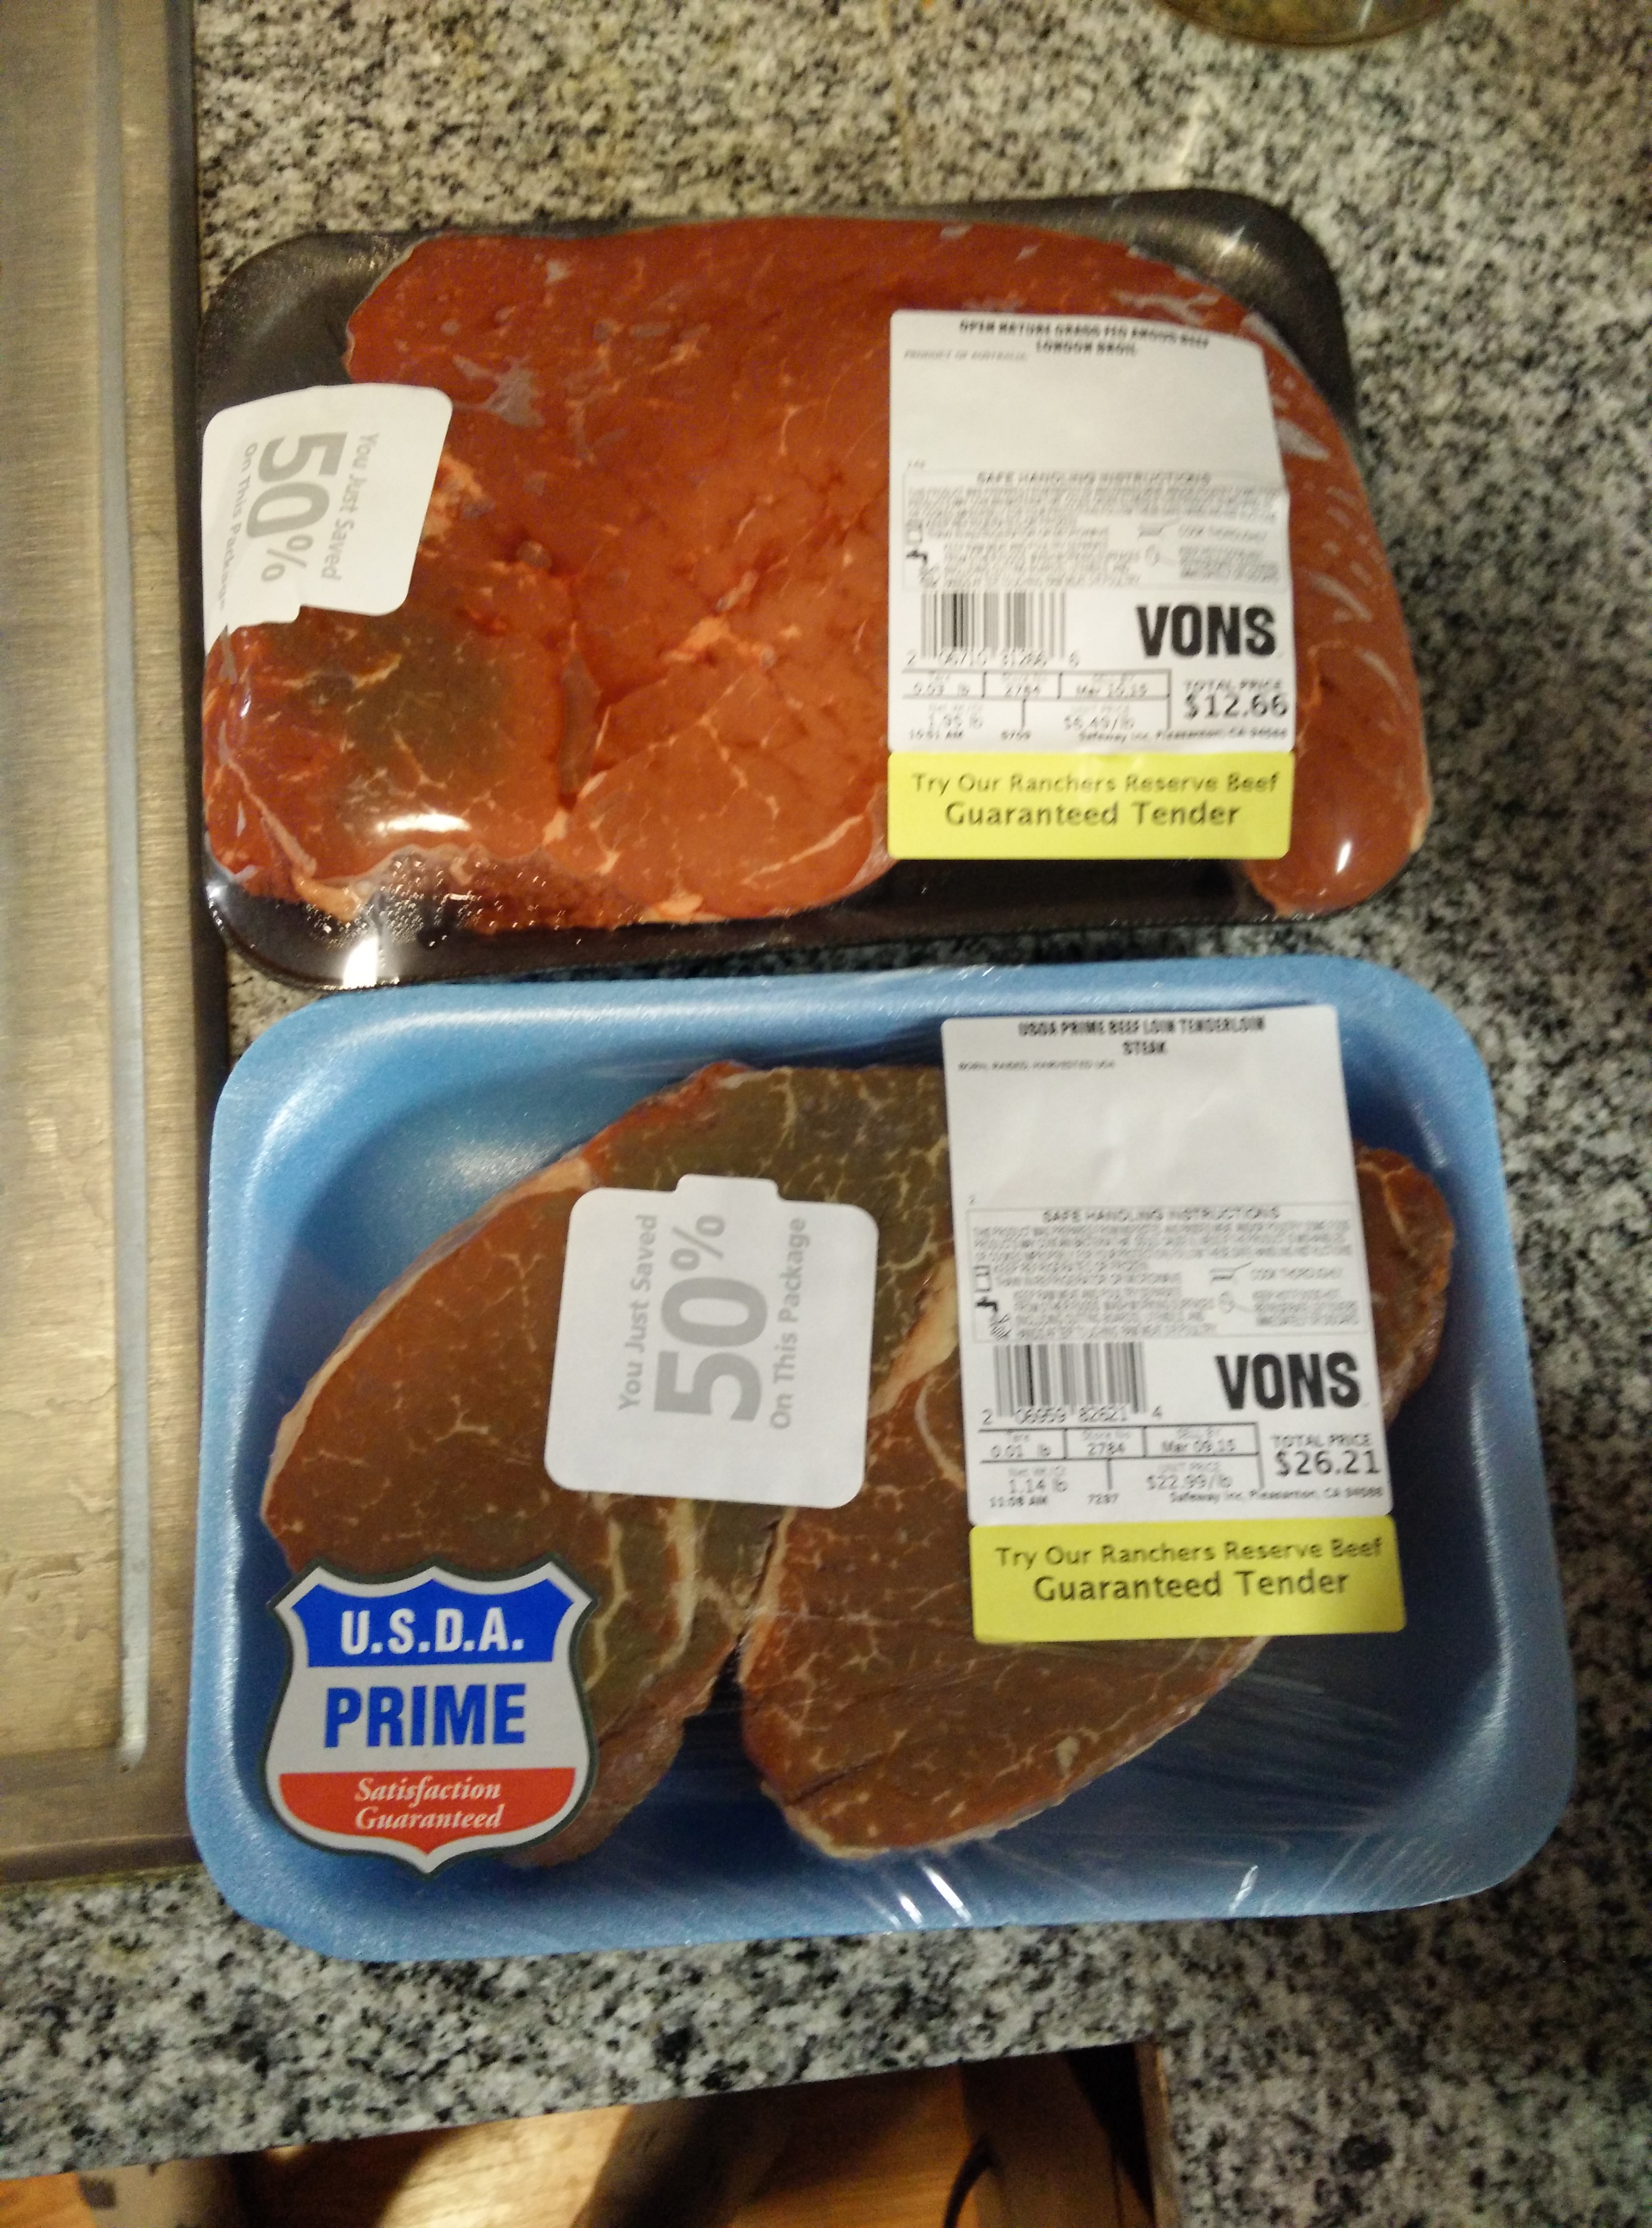 how to cook a steak whe its frozen